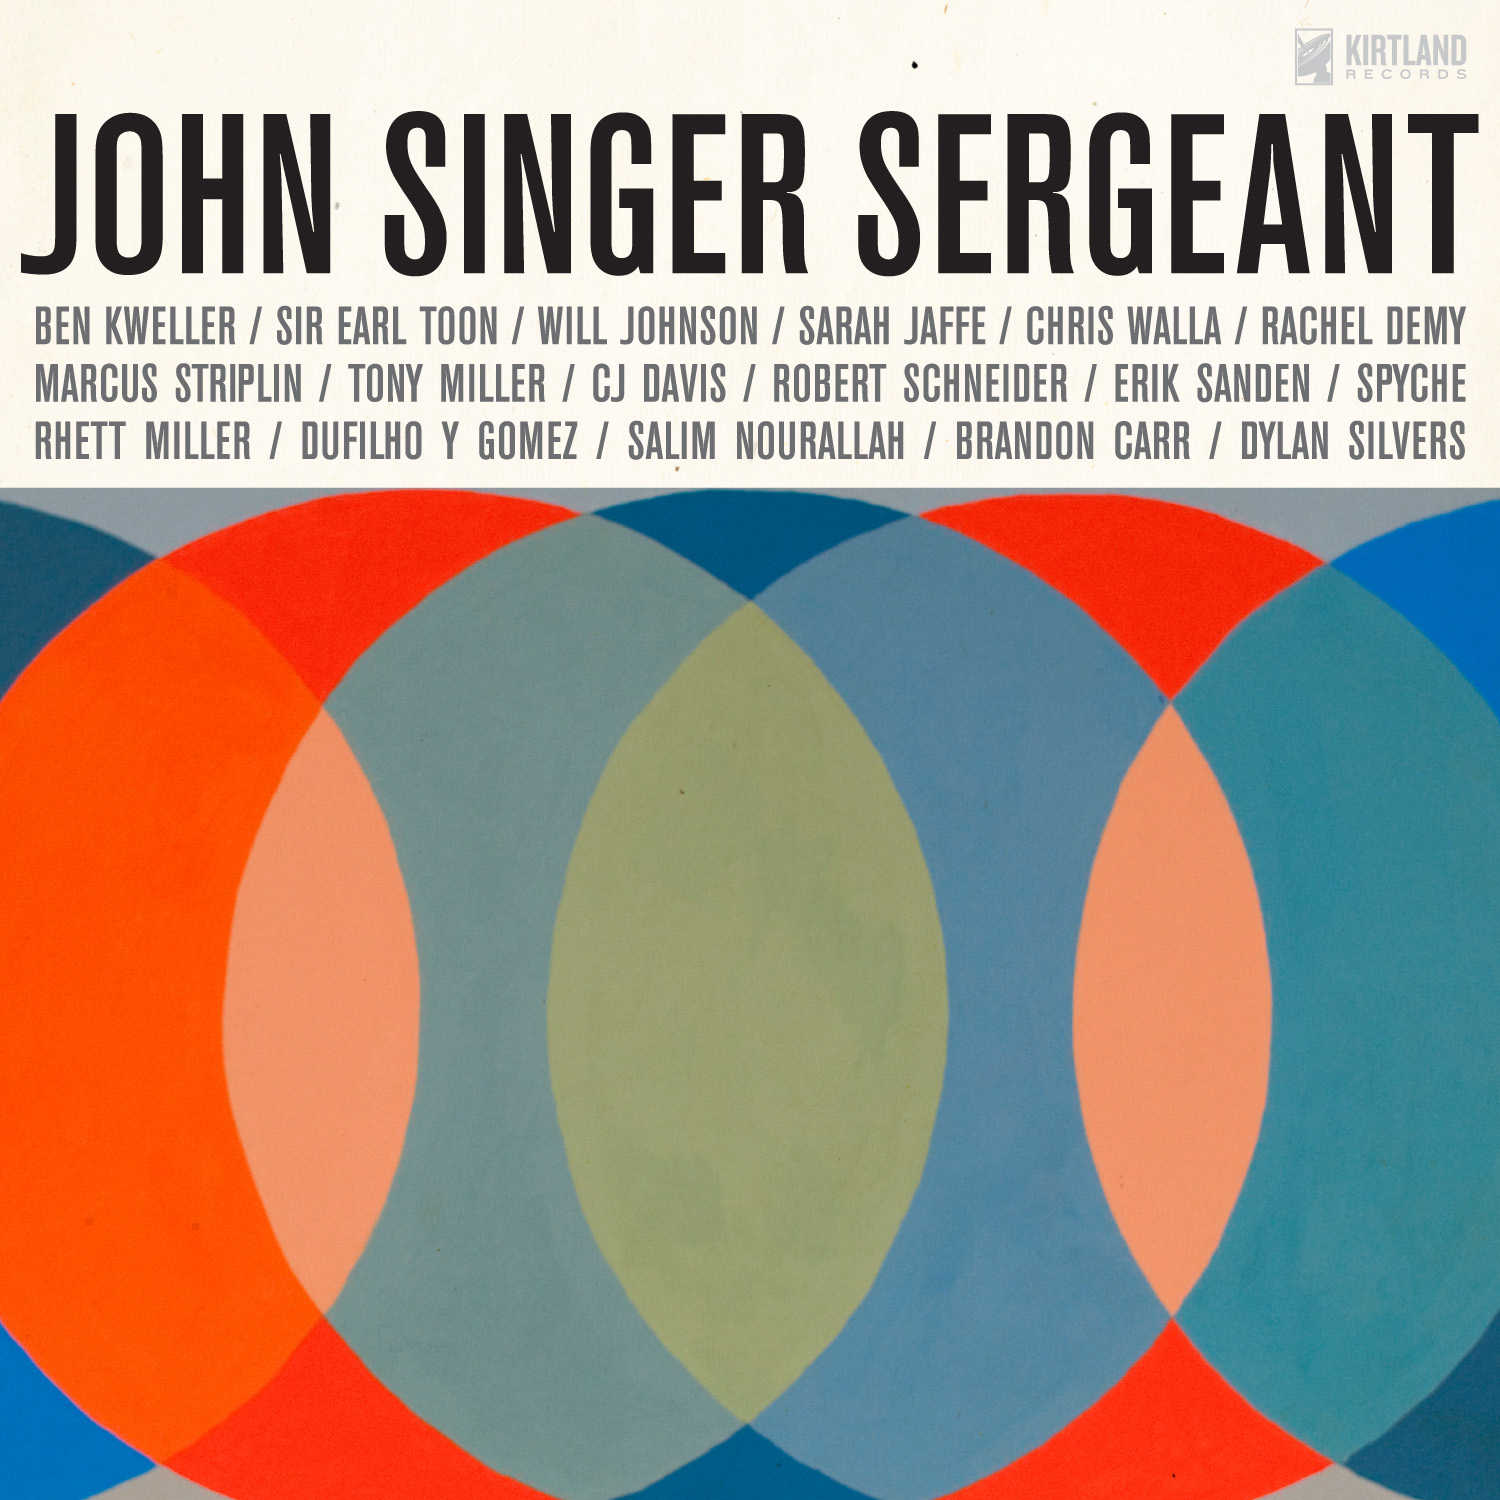 John Singer Sergeant